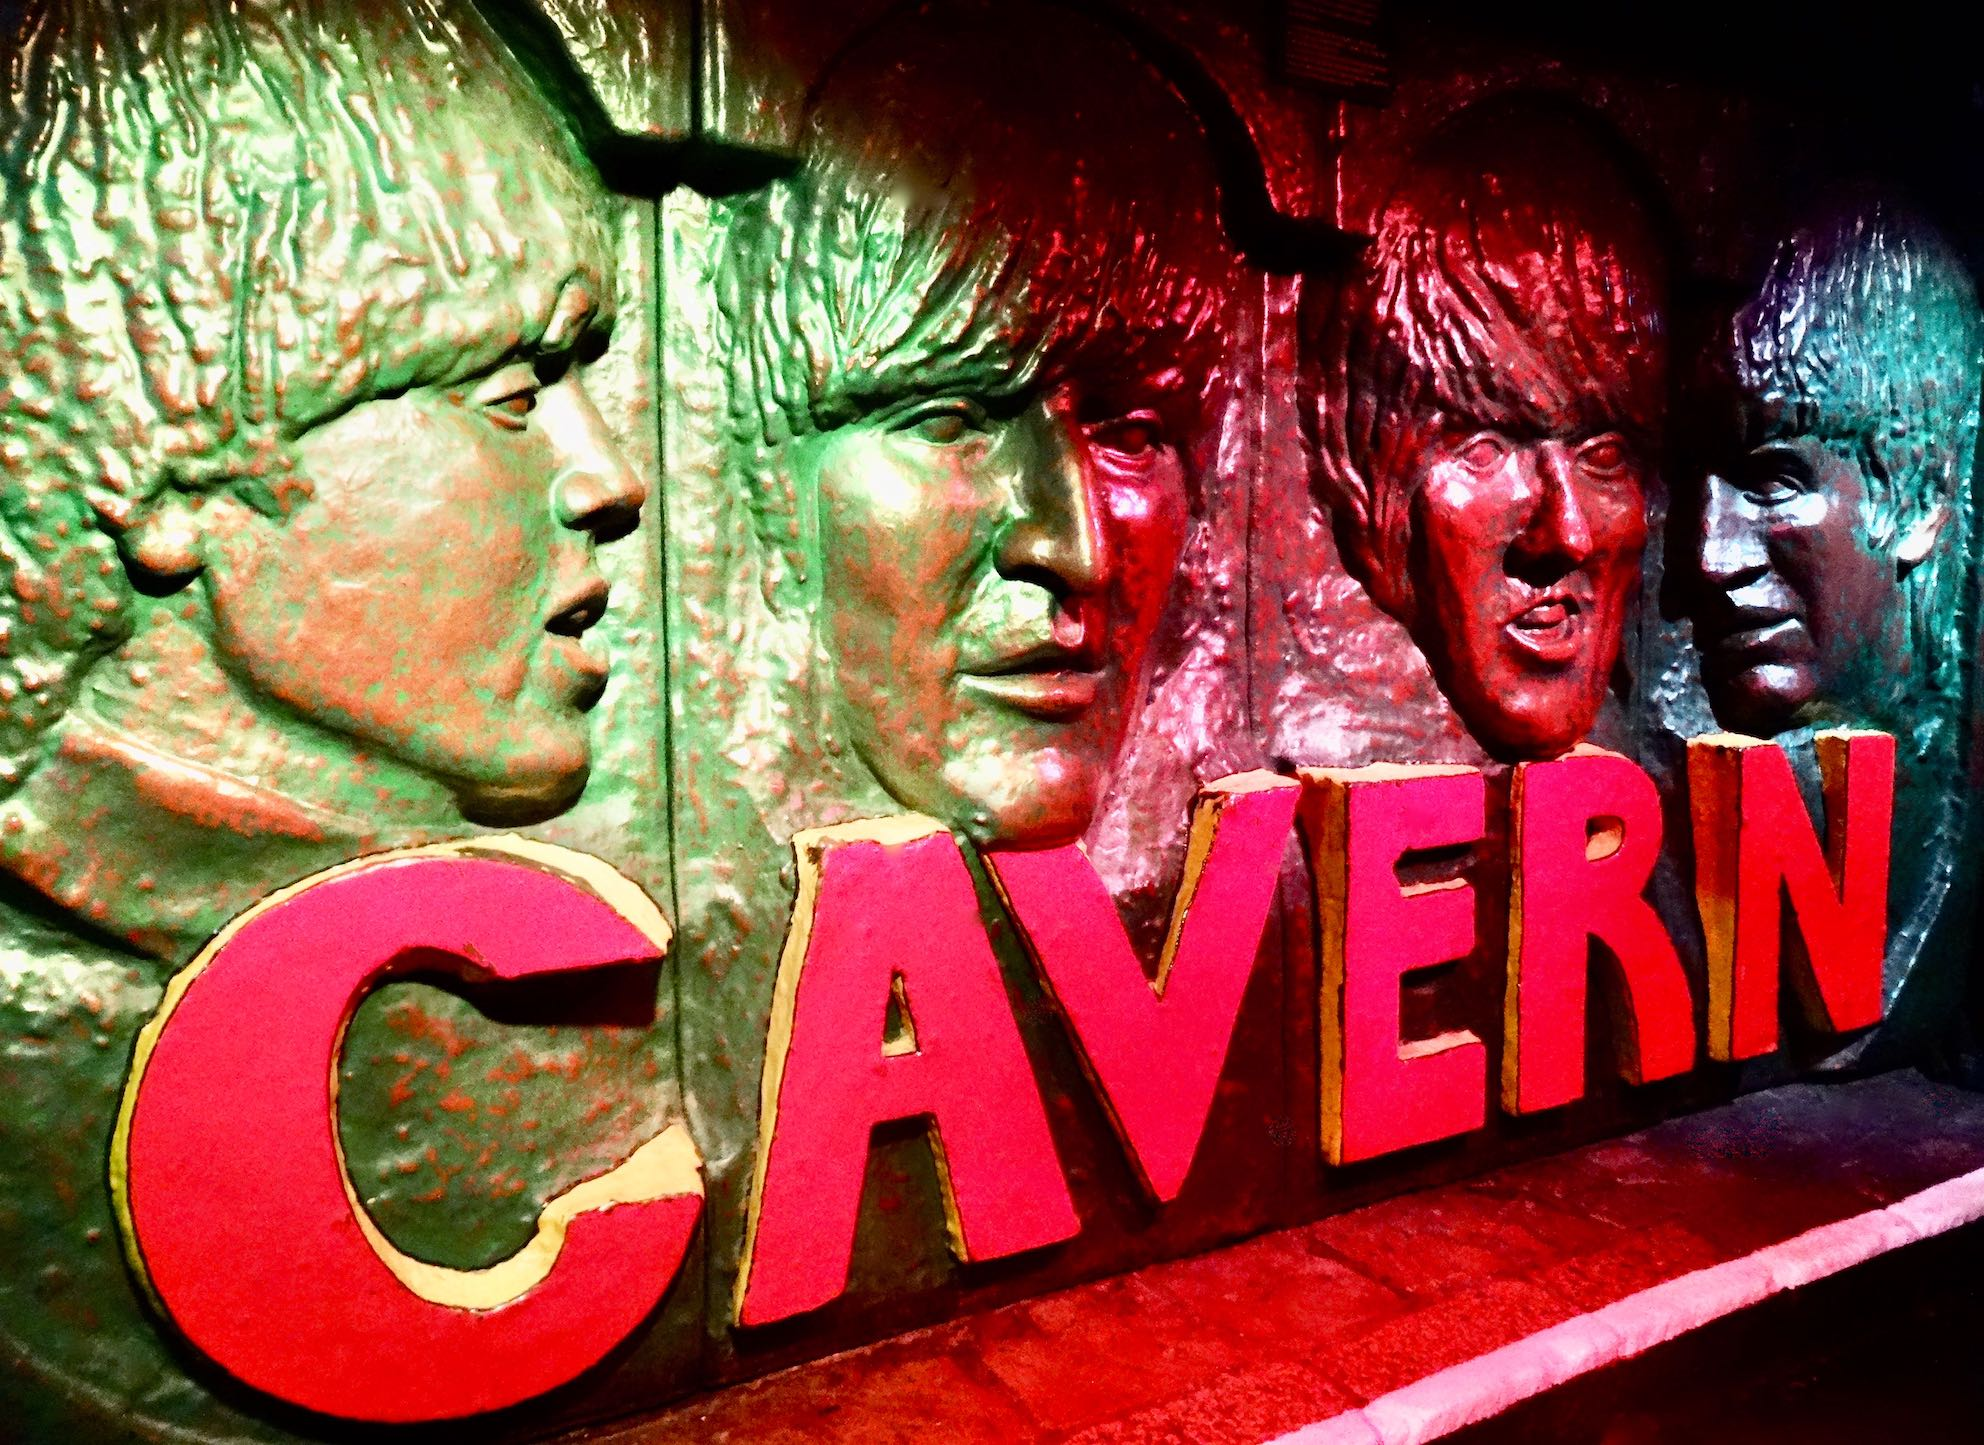 Visiting the Cavern Club in Liverpool